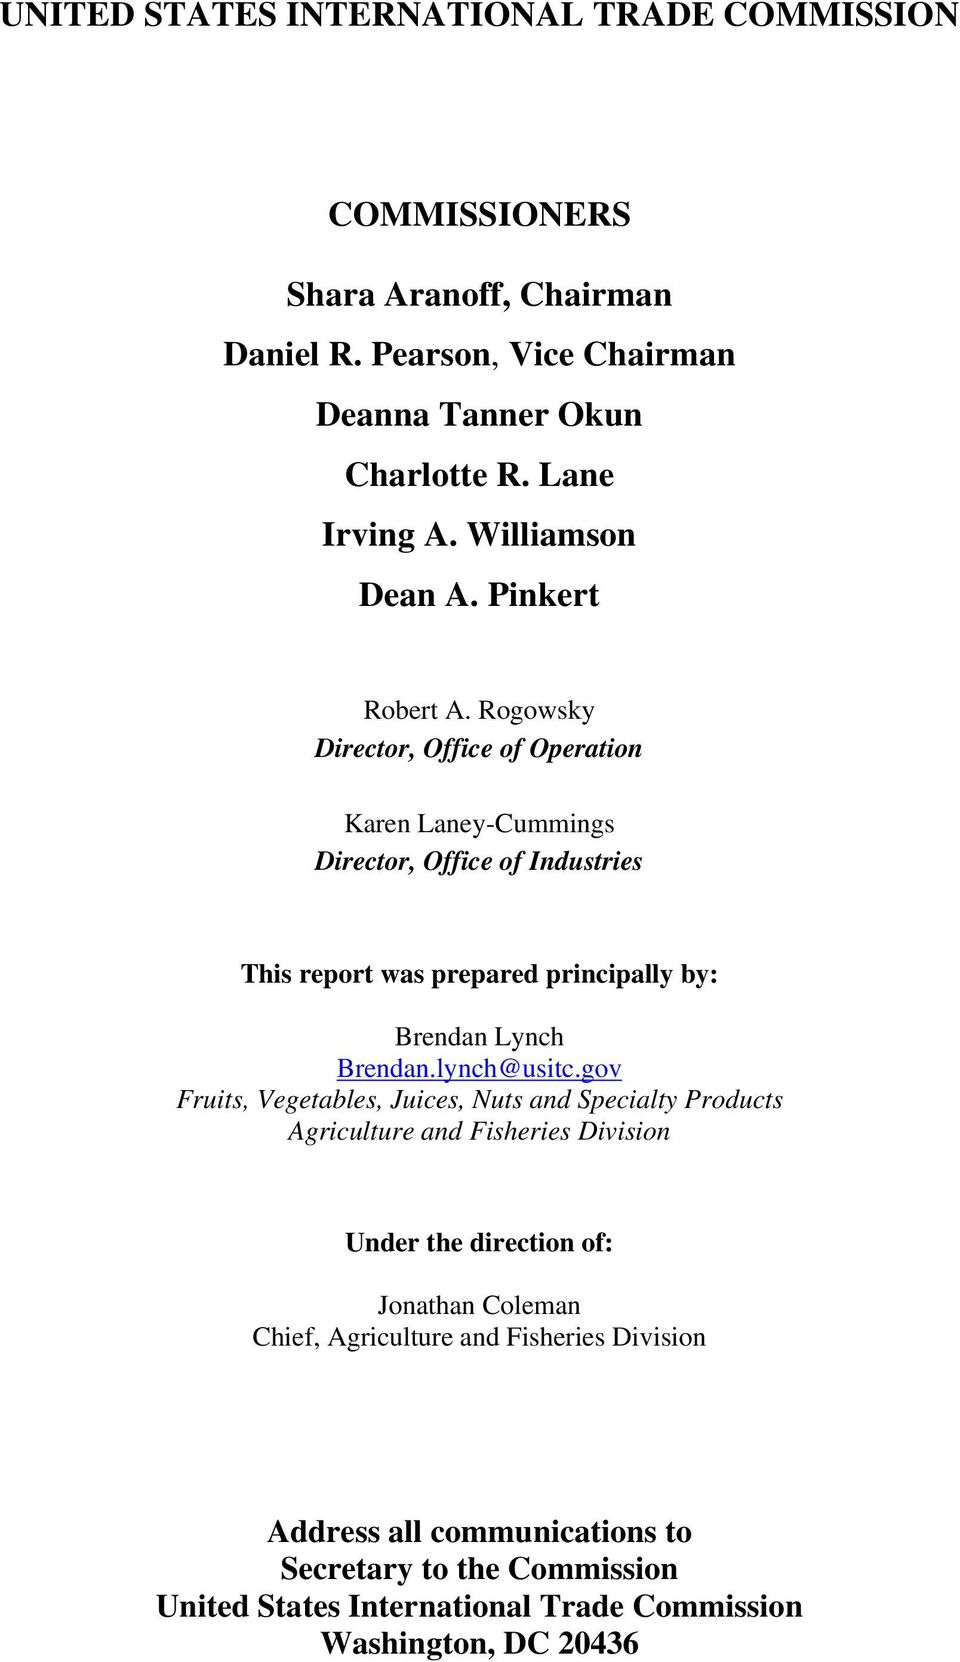 Rogowsky Director, Office of Operation Karen Laney-Cummings Director, Office of Industries This report was prepared principally by: Brendan Lynch Brendan.lynch@usitc.